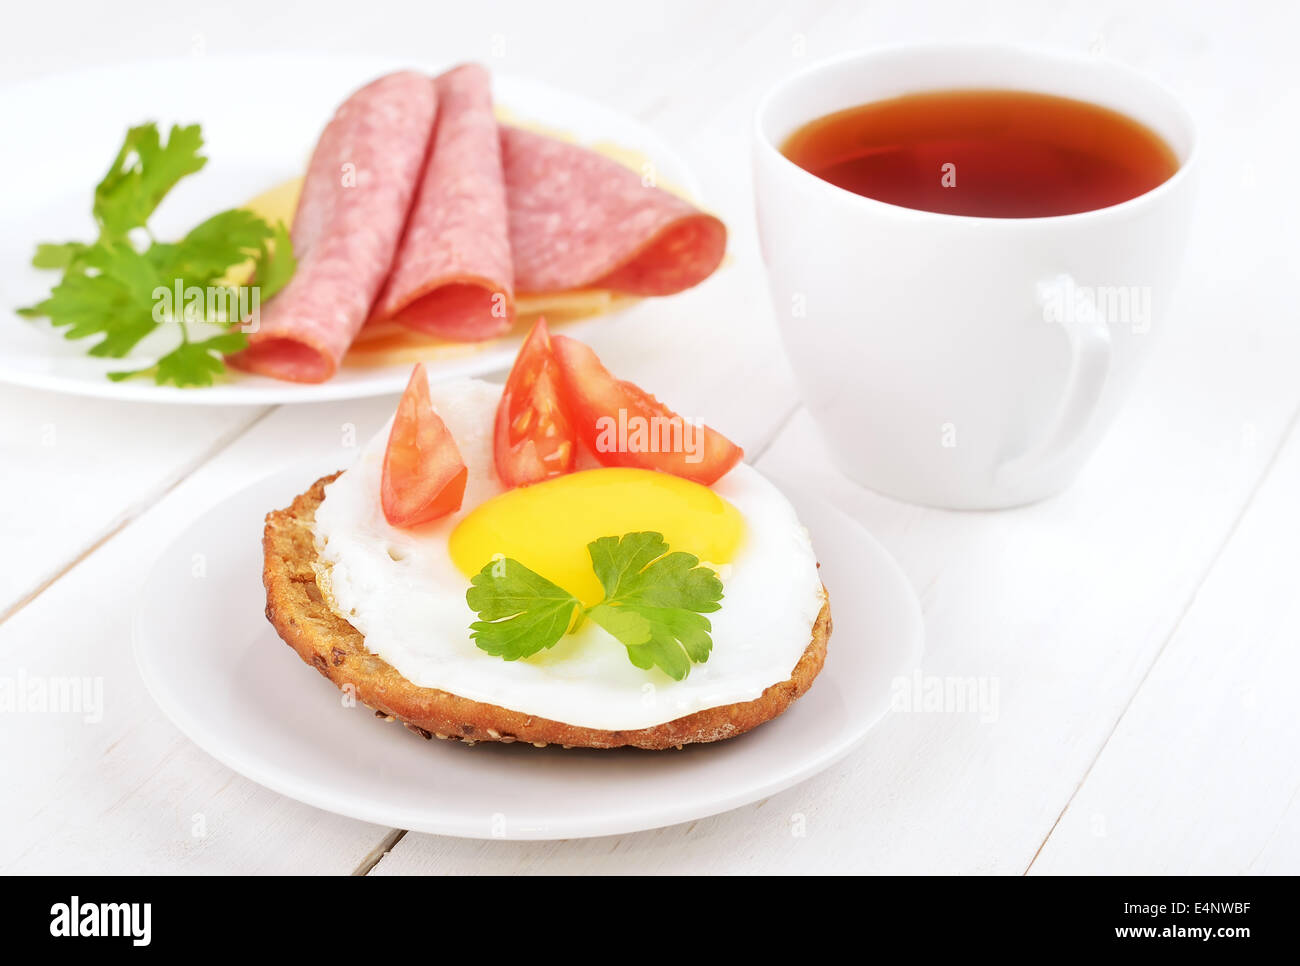 Breakfast - sandwich with fried egg, tomato slices and tea on wooden table - Stock Image